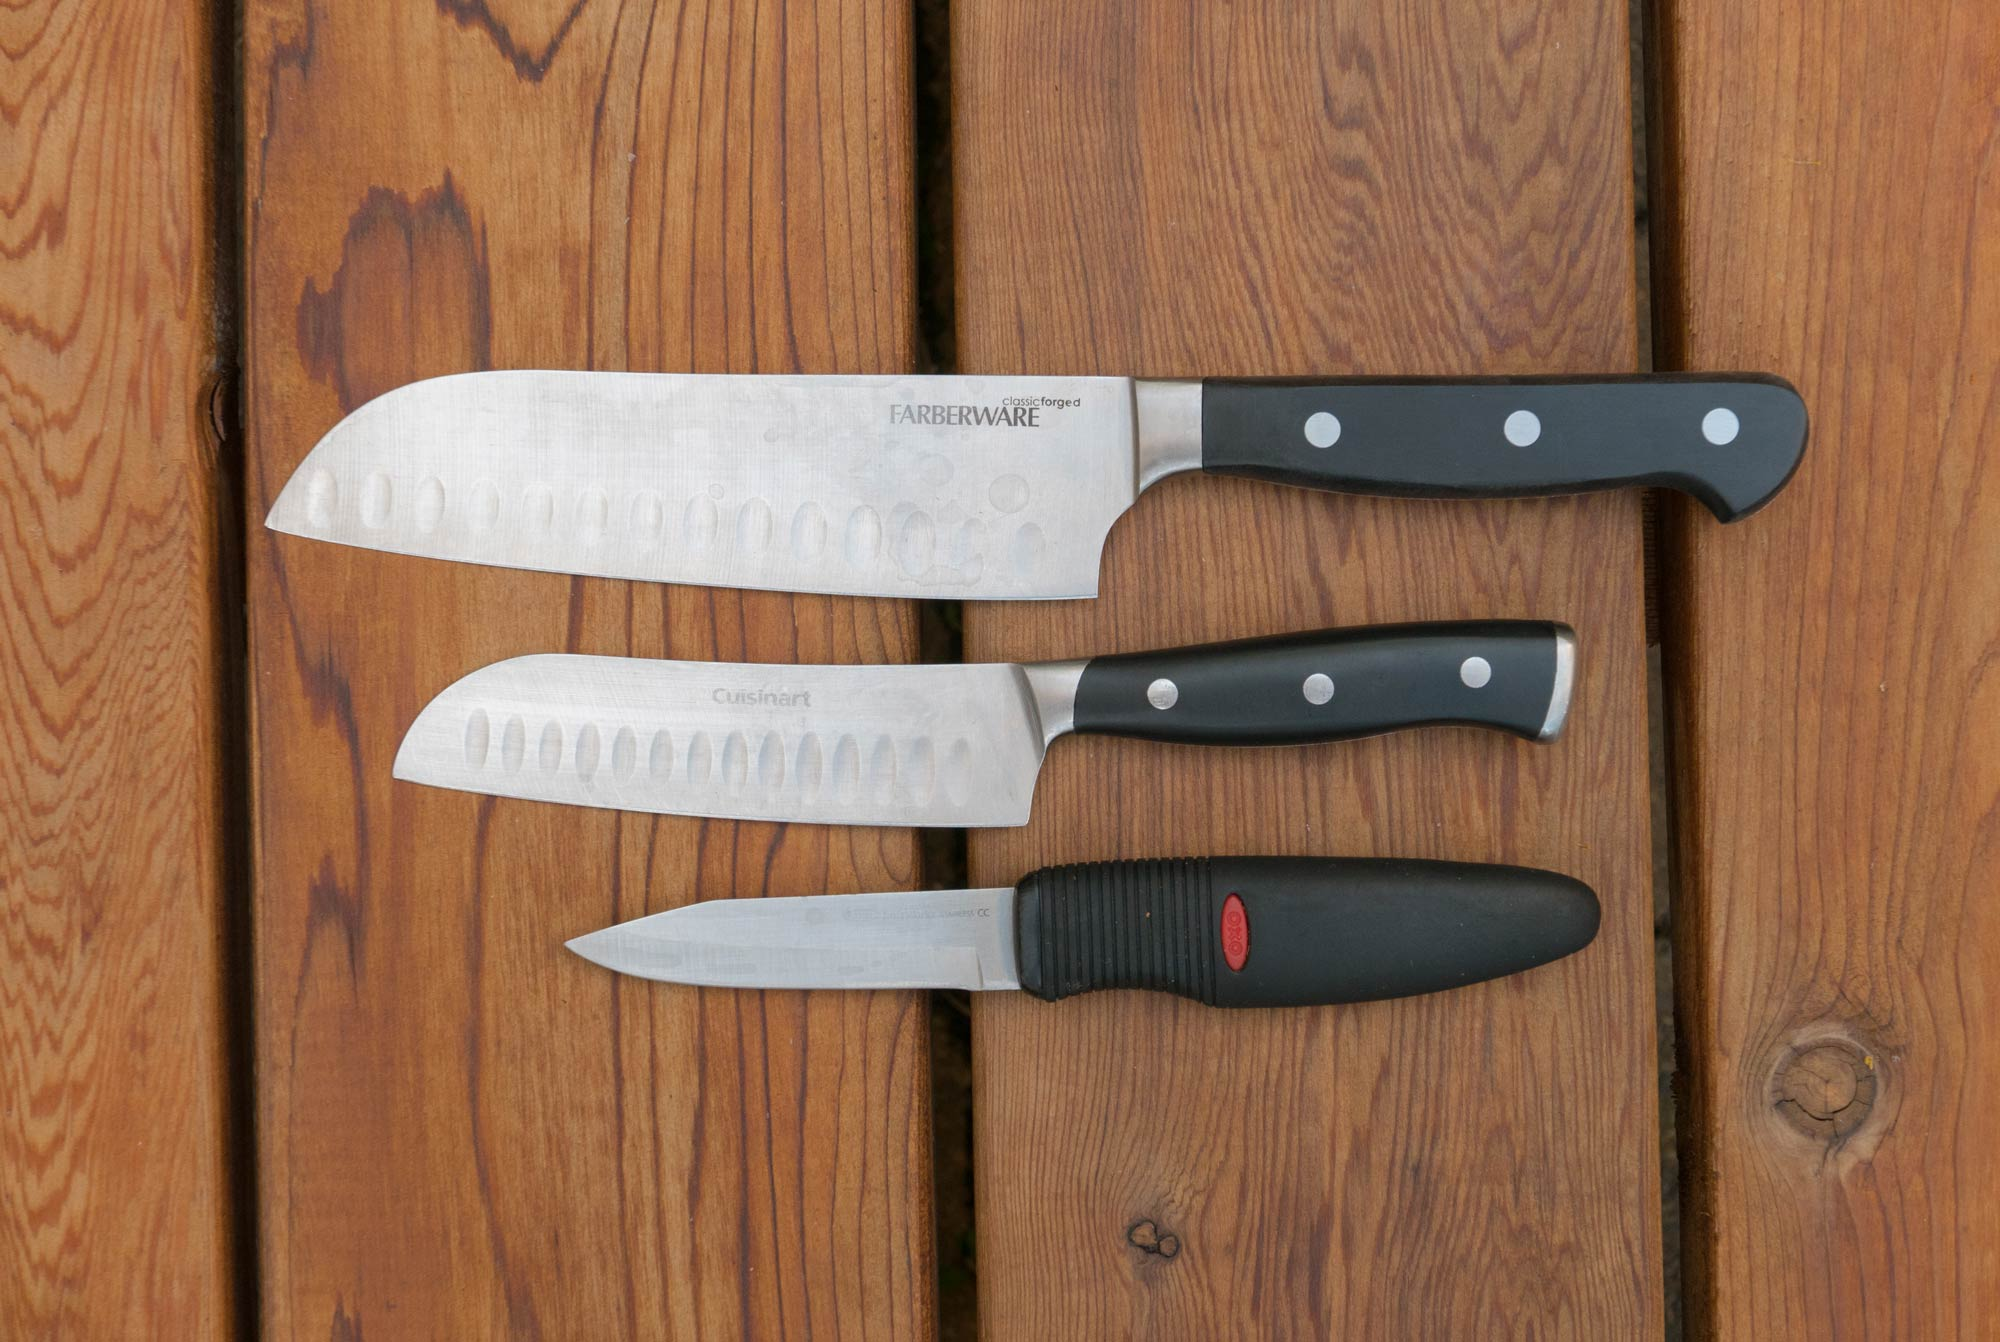 camp kitchen knife set for cooking outdoors